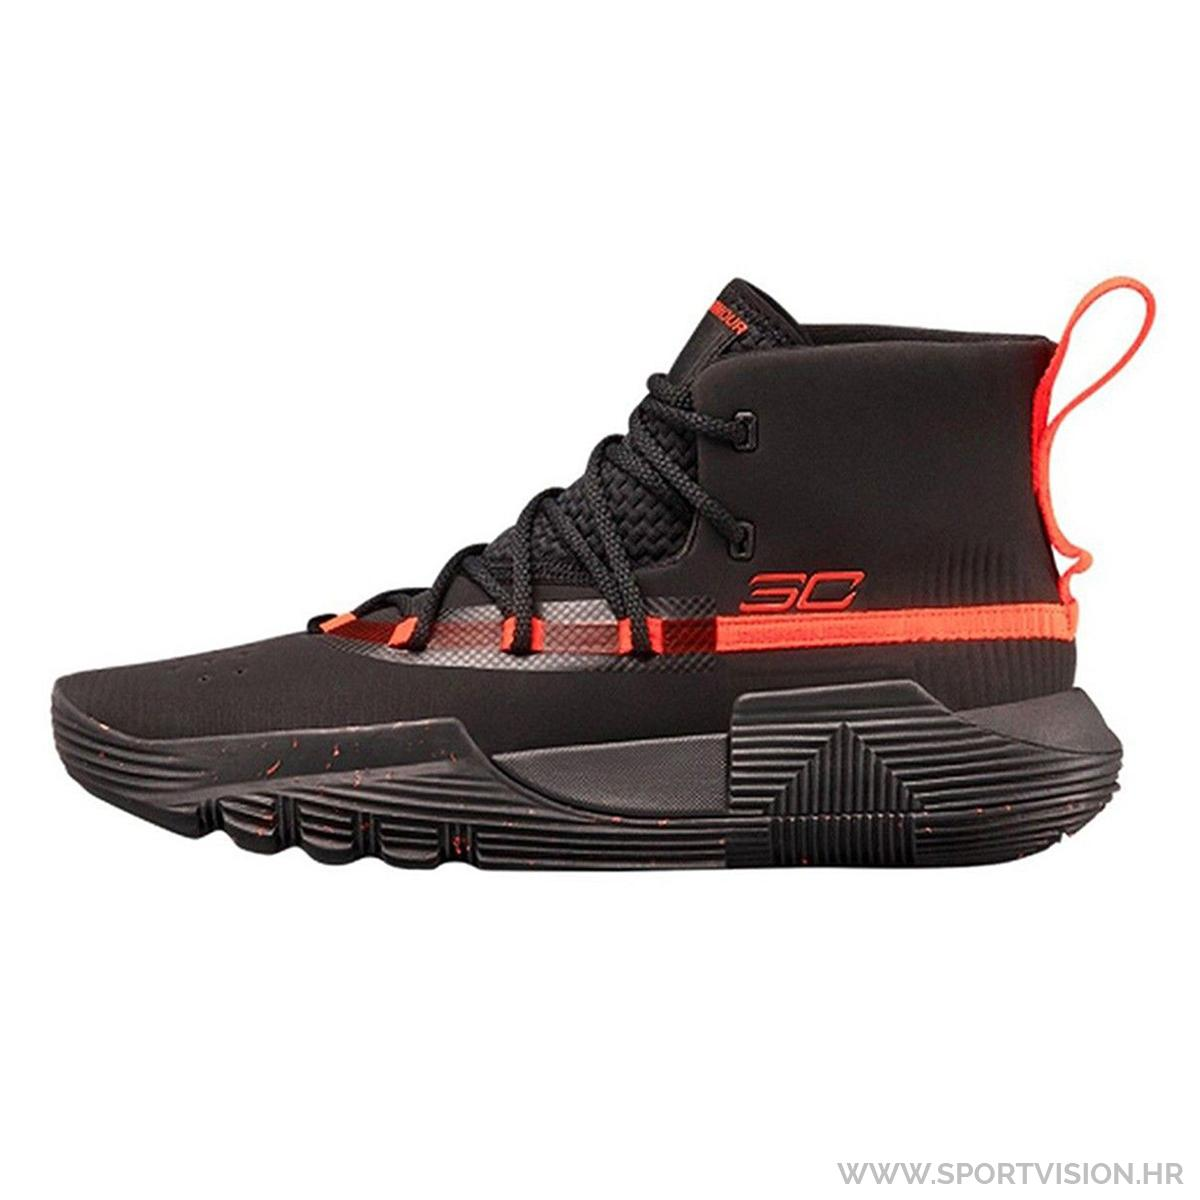 UNDER ARMOUR tenisice BGS SC 3ZER0 II